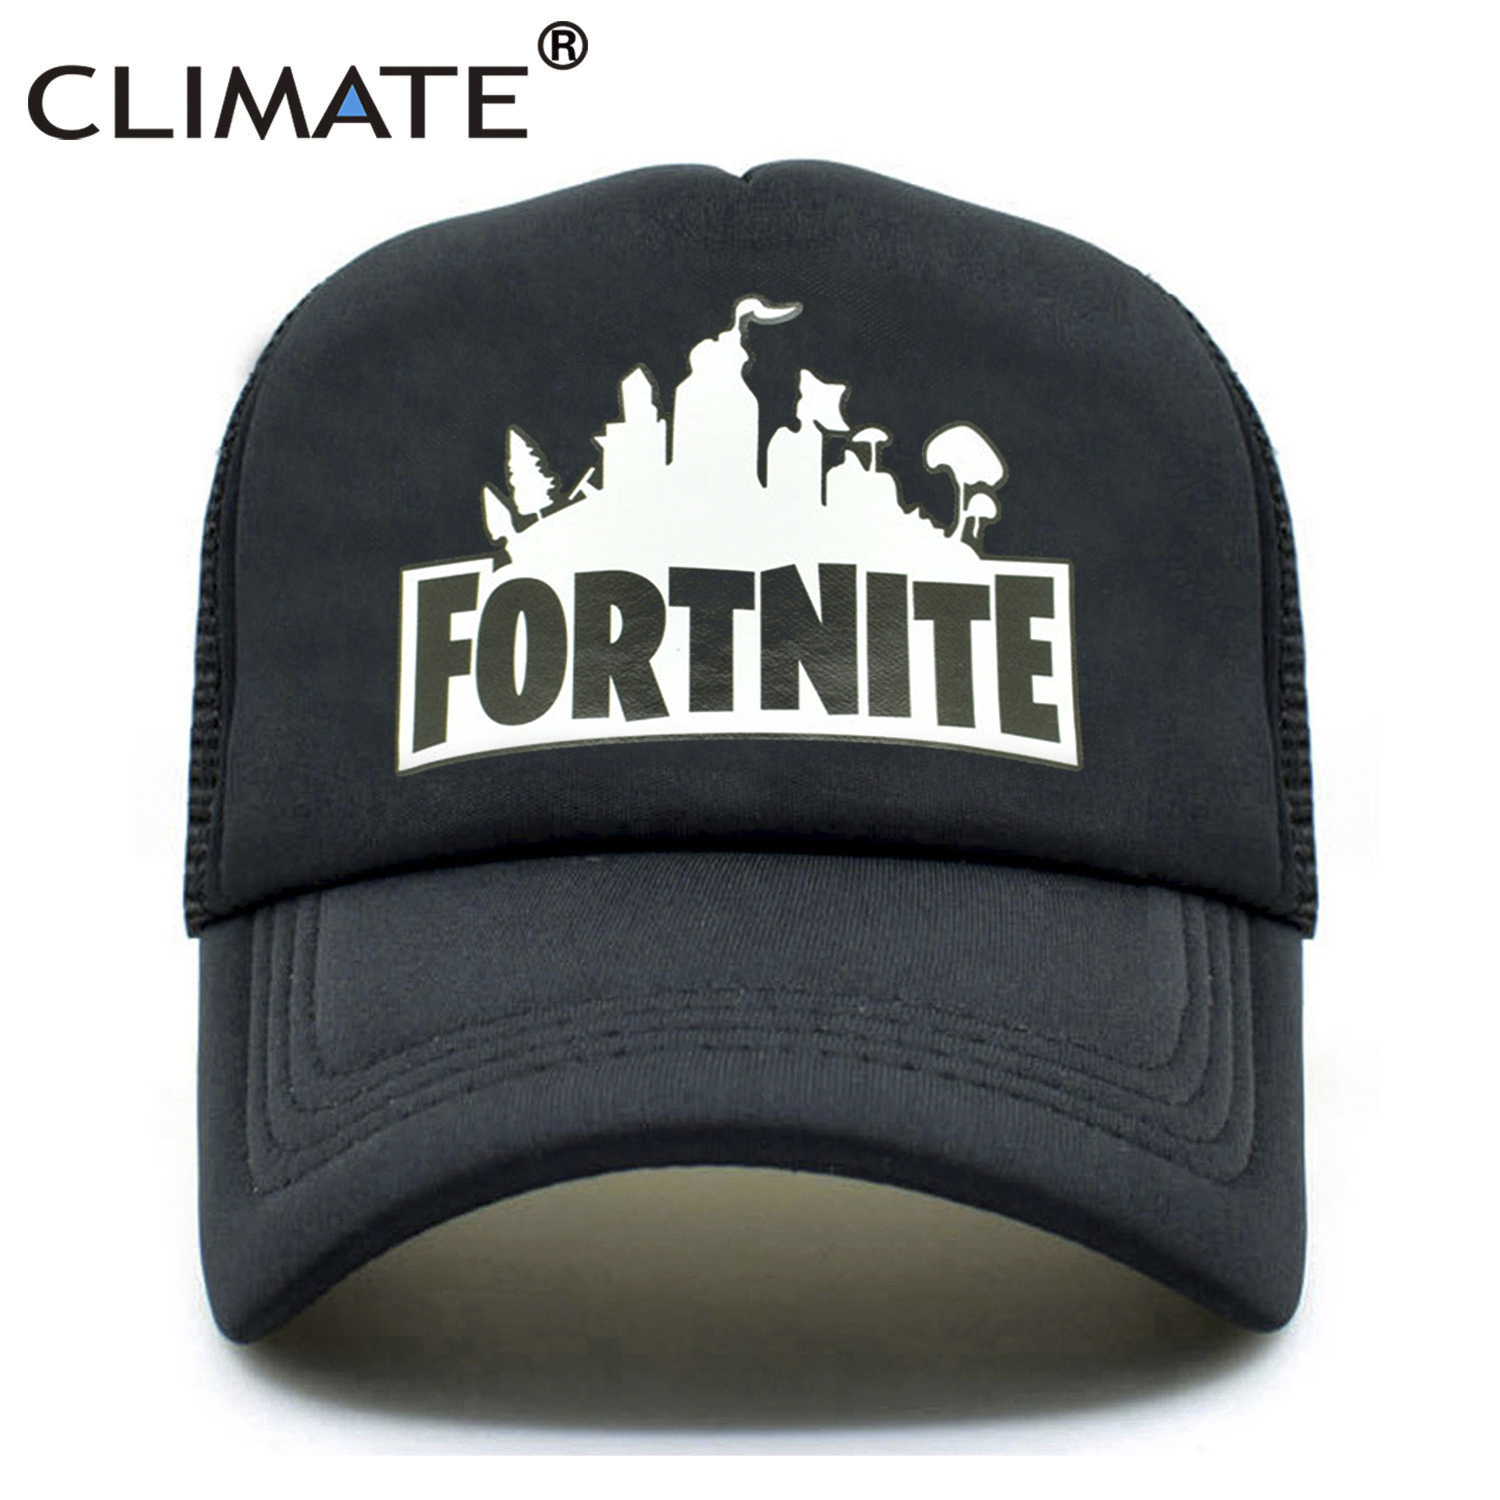 CLIMATE Fortnite New Hot Trucker Cap Hot Game Fortnite Fans Cool Mesh Caps Summer Baseball Net Trucker Caps Hat For Men Women climate men summer black mesh caps star wars bounty hunter fans cool summer baseball cap black net trucker caps hat for men